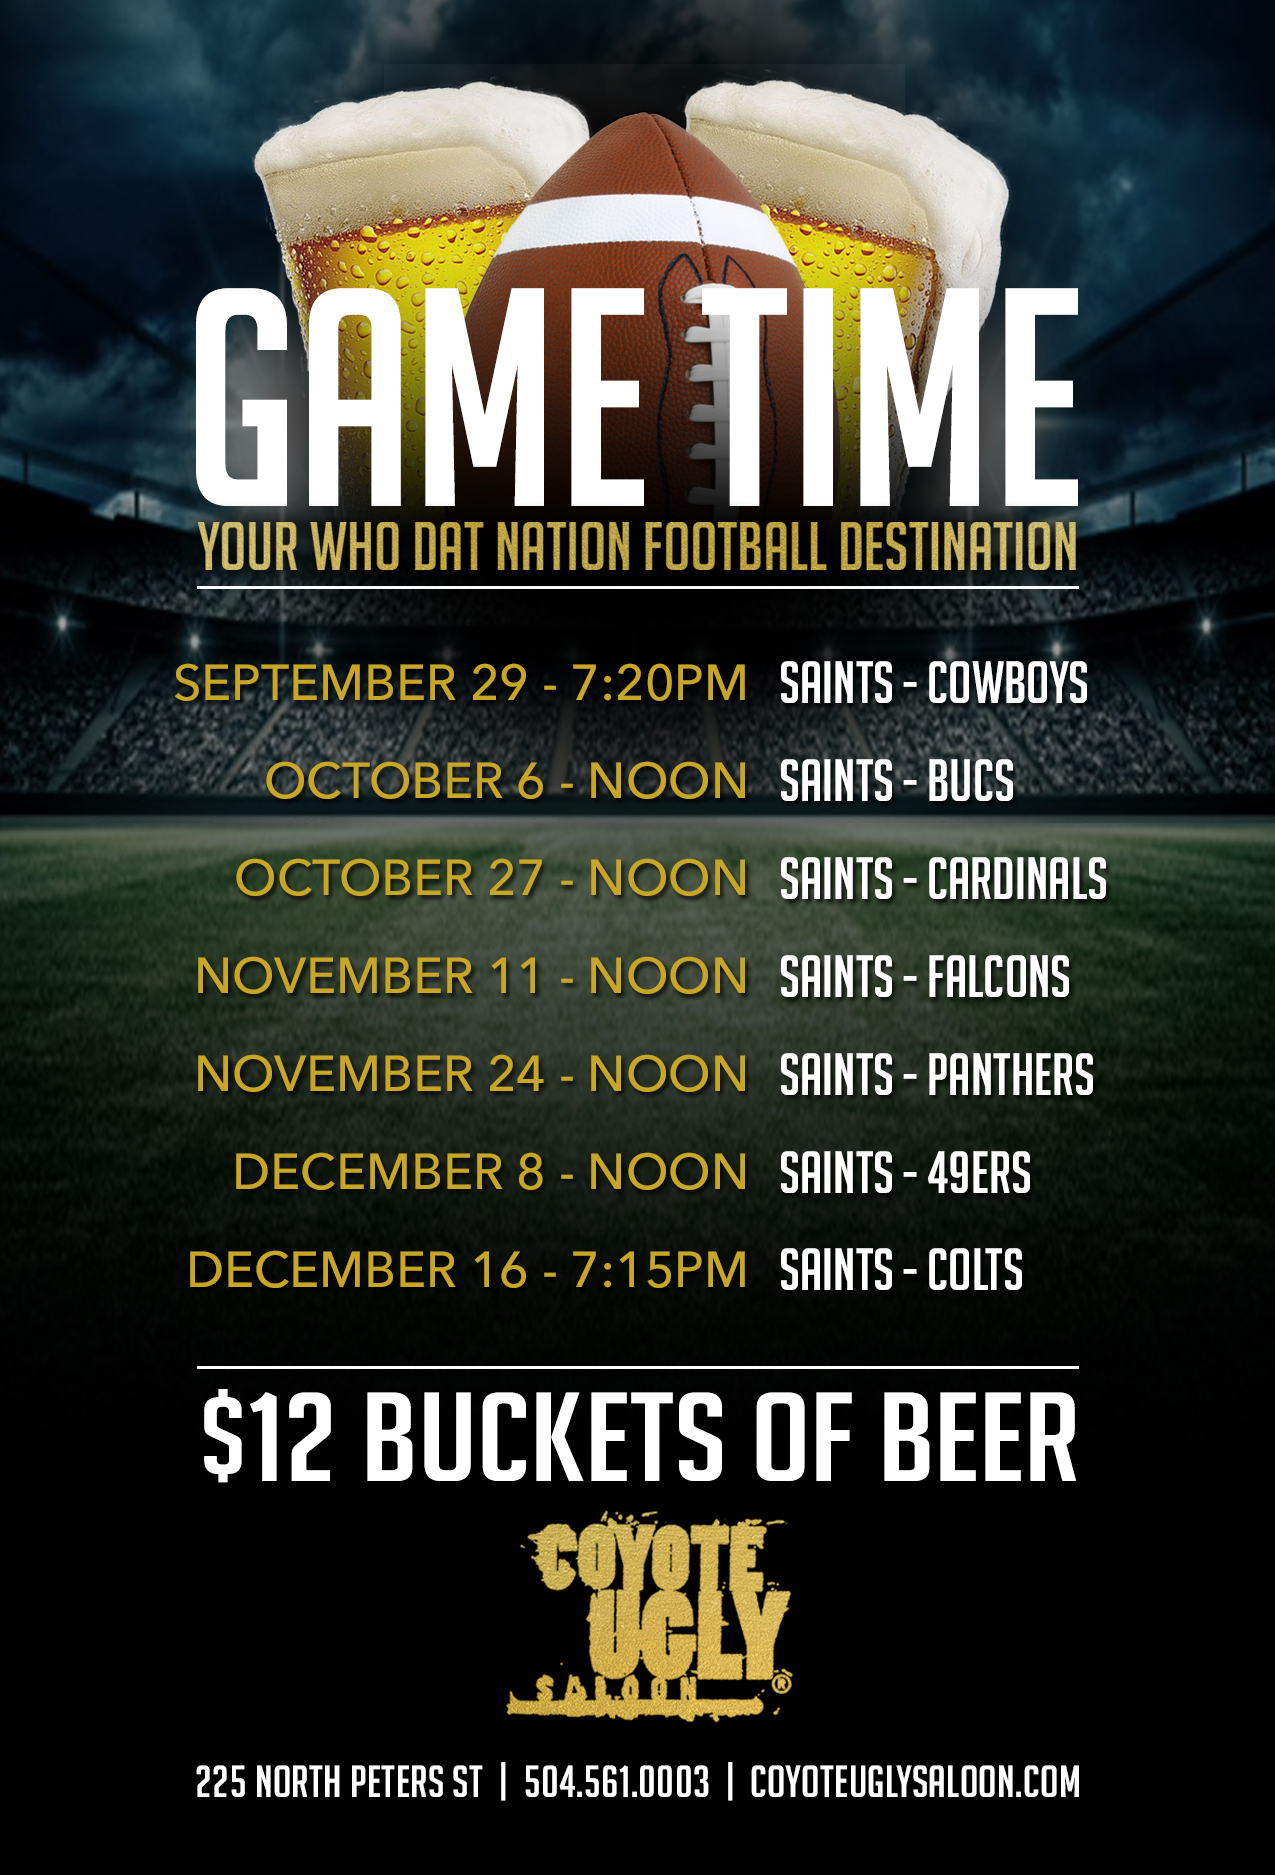 Saints vs. Colts in New Orleans on December 16, 2019